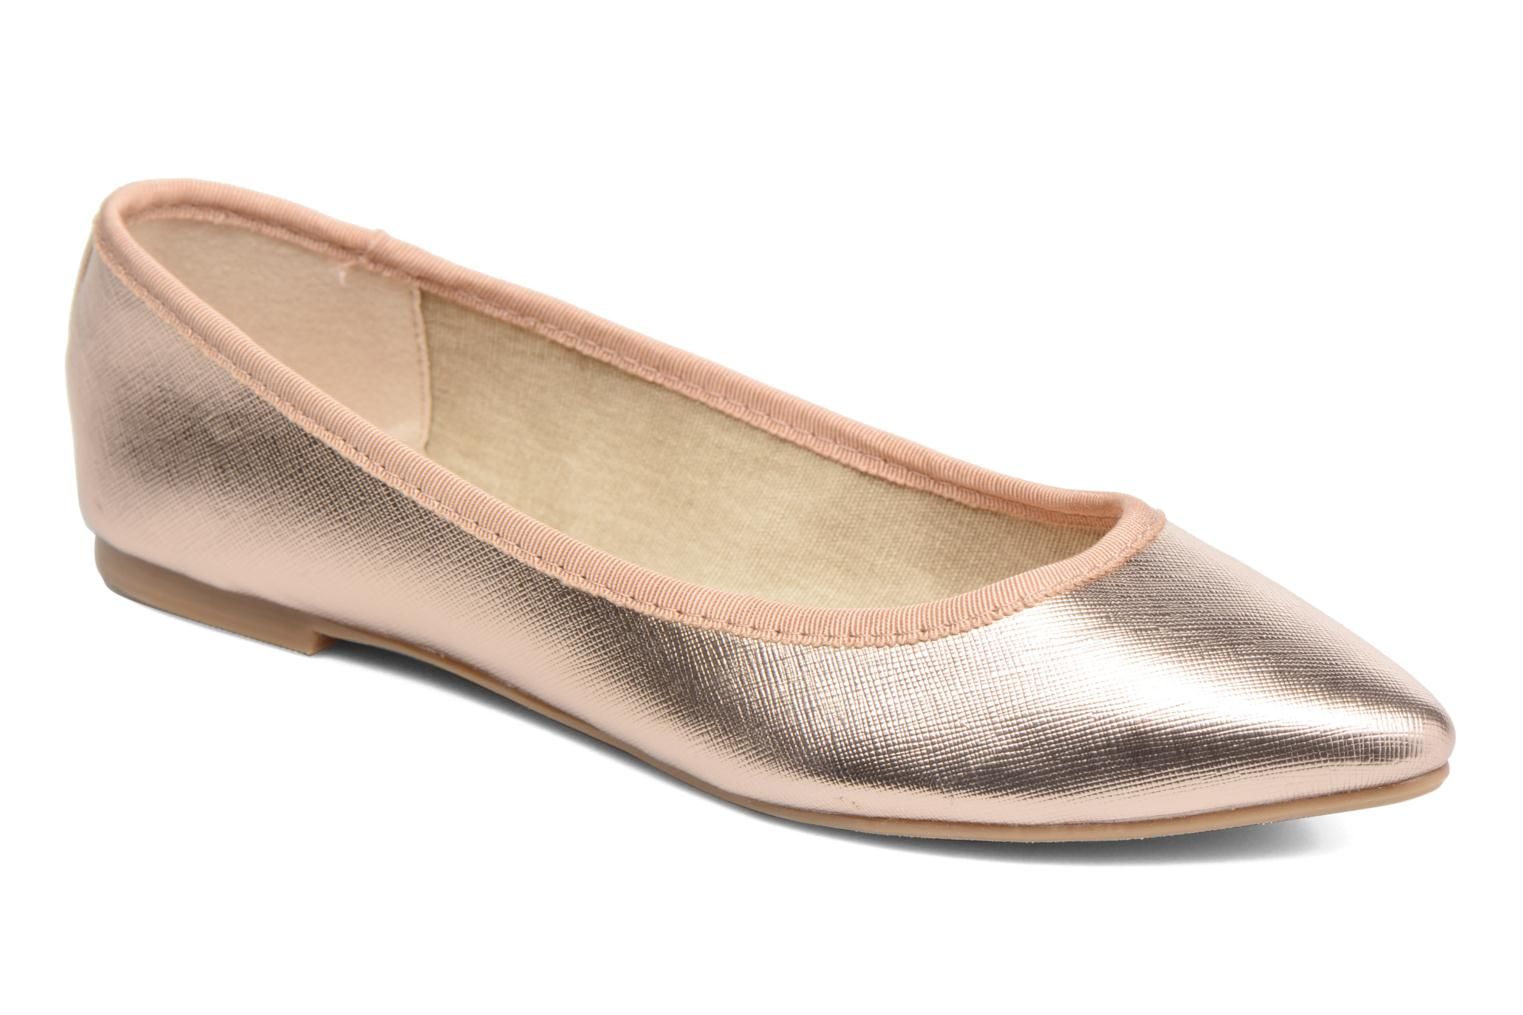 Marques Chaussure femme I Love Shoes femme MC ANAS rose gold PAC 009